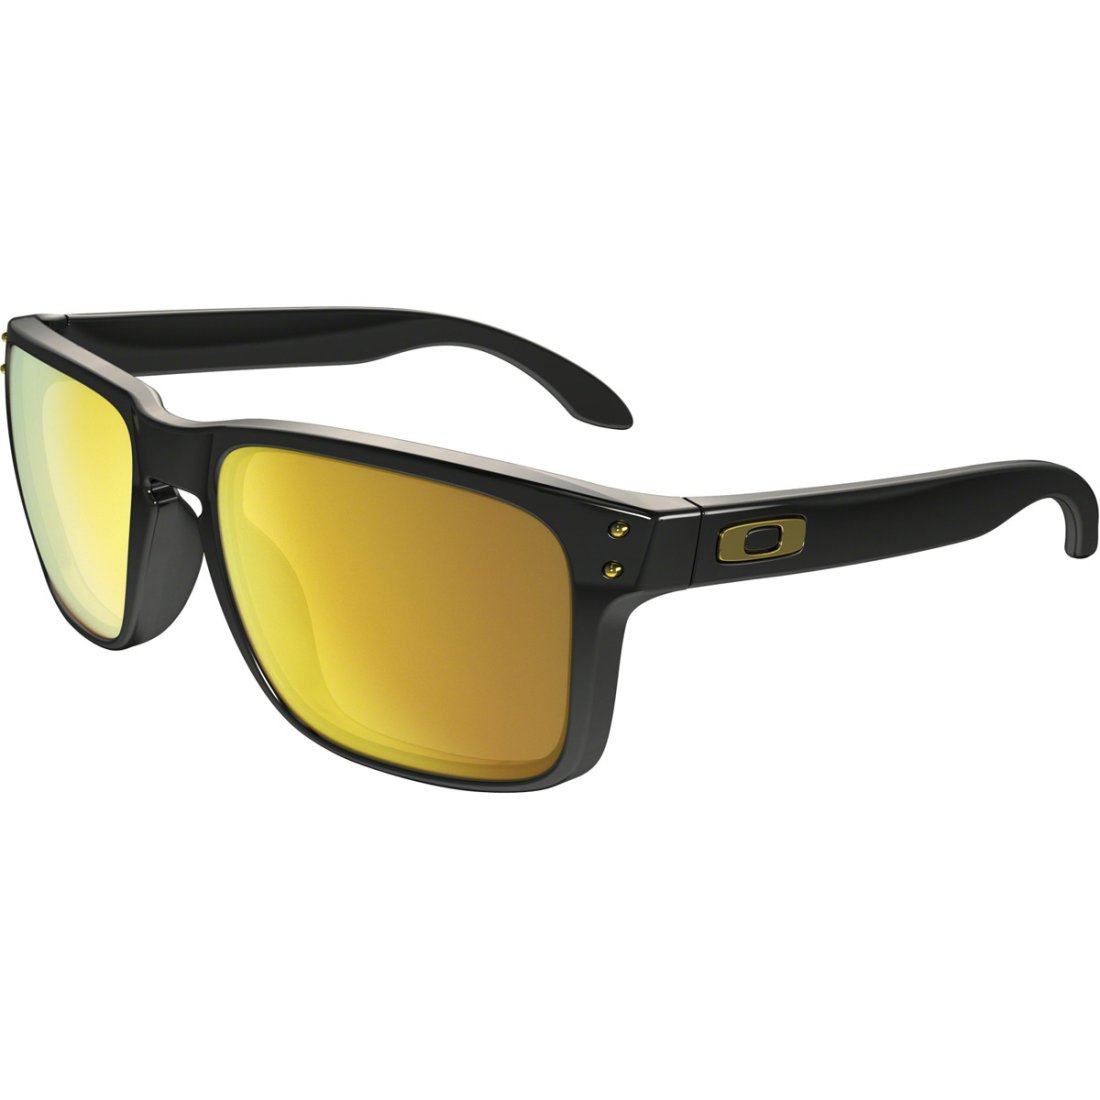 Lunettes de soleil OAKLEY Enduro Ink Collection Sepia / Dark Grey UNICA aV9Pn